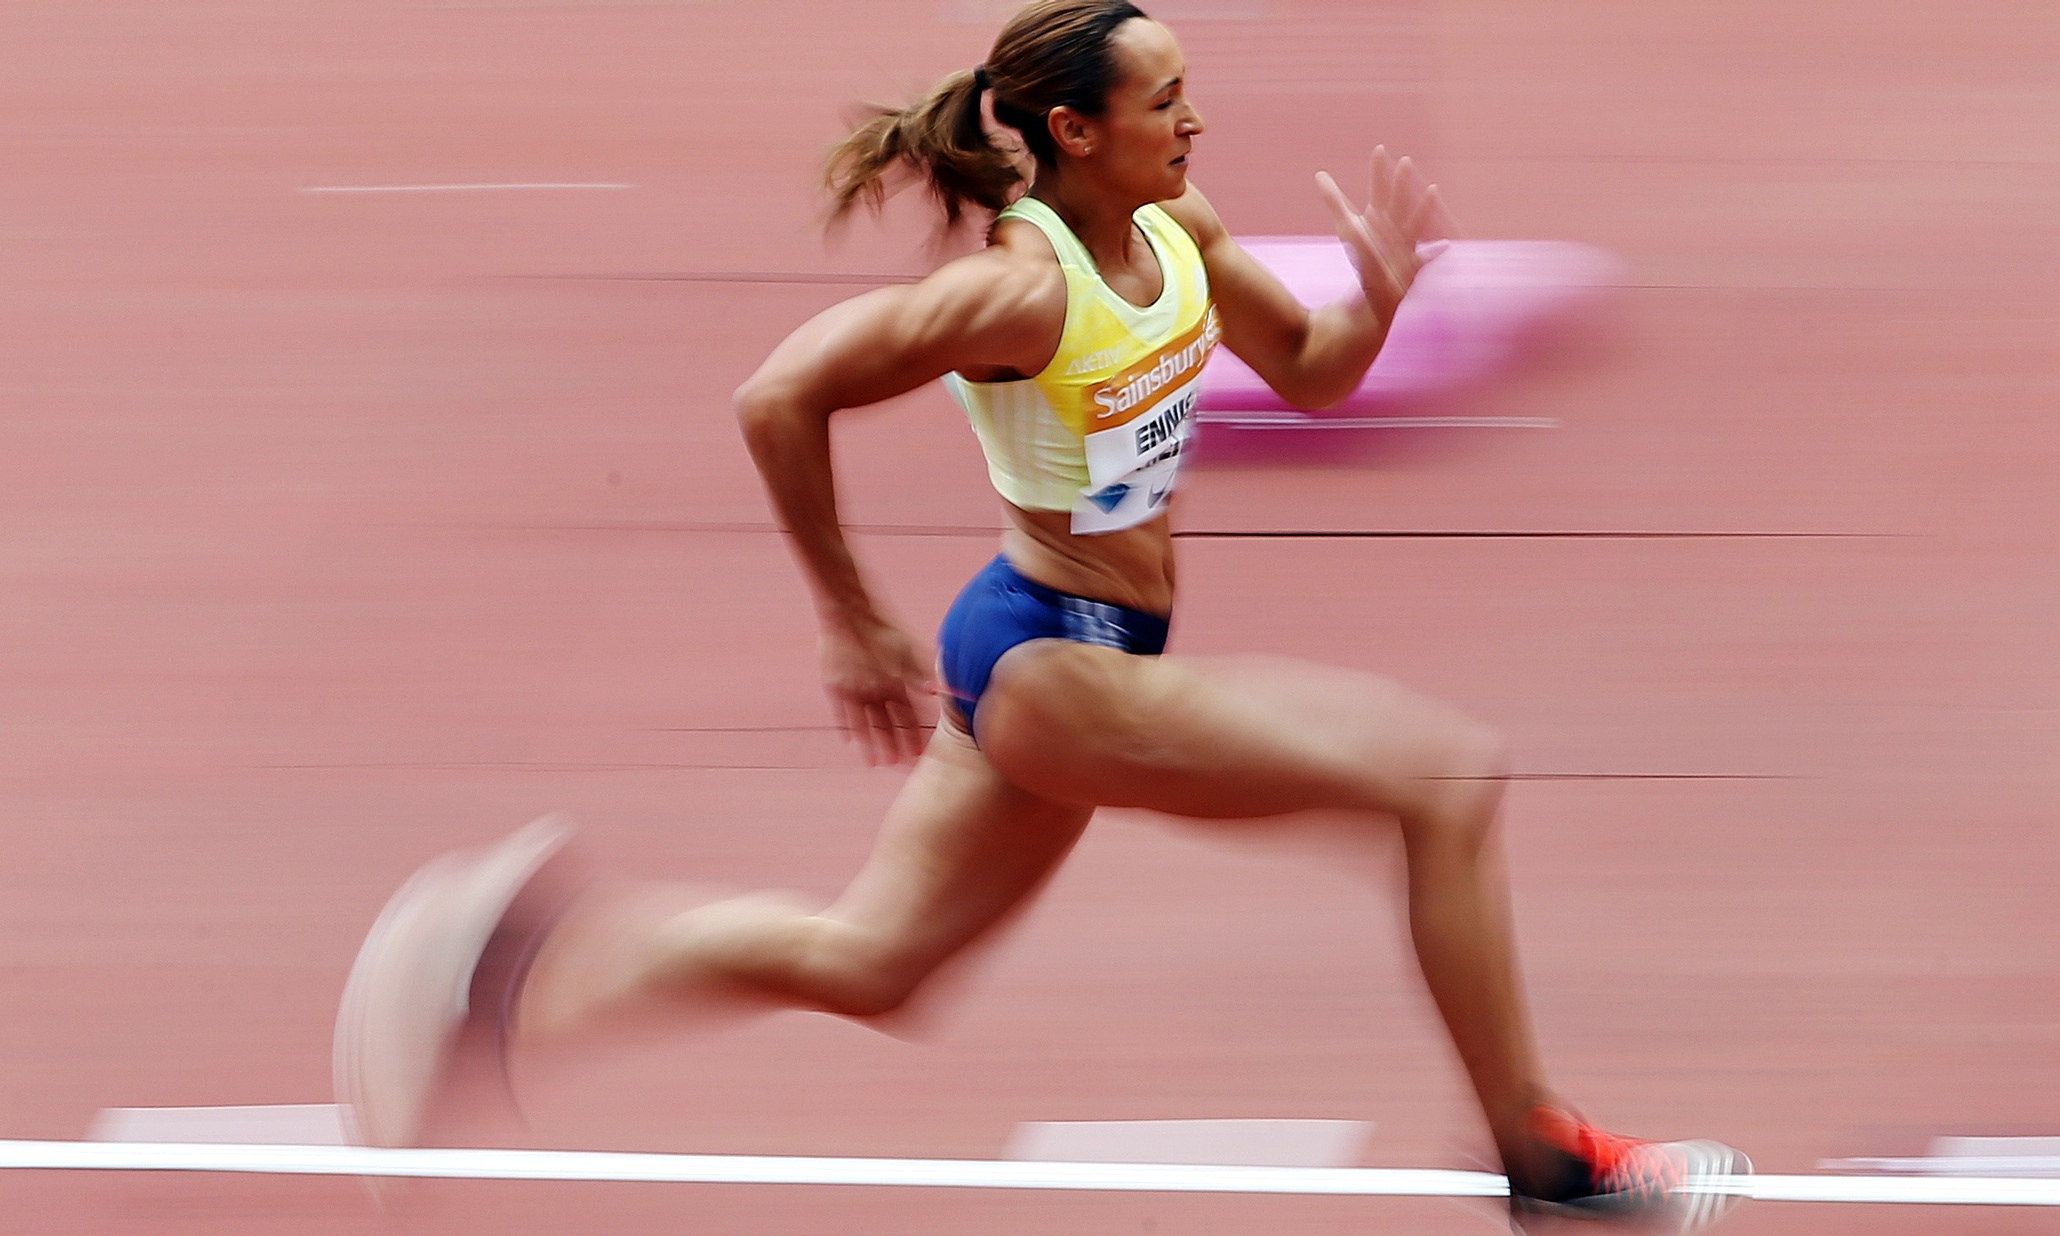 jessica ennis hill facing calls - HD 2060×1236